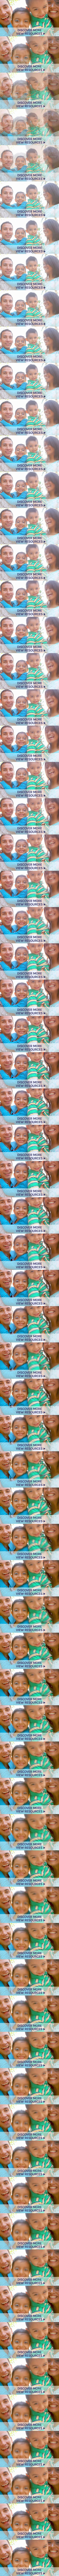 Discover More View Resources